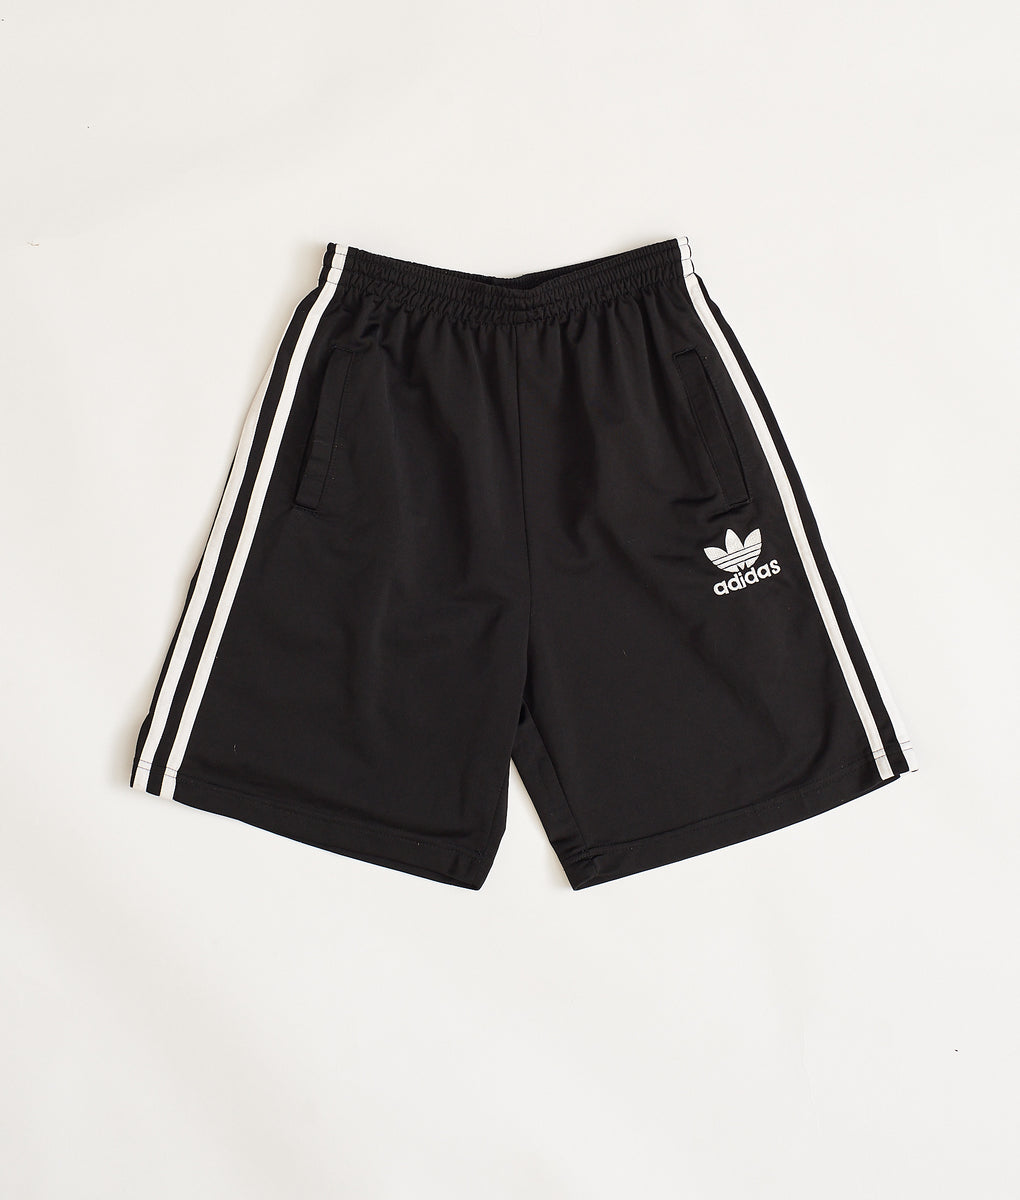 Adidas Sports Shorts (M) - FROTHLYF